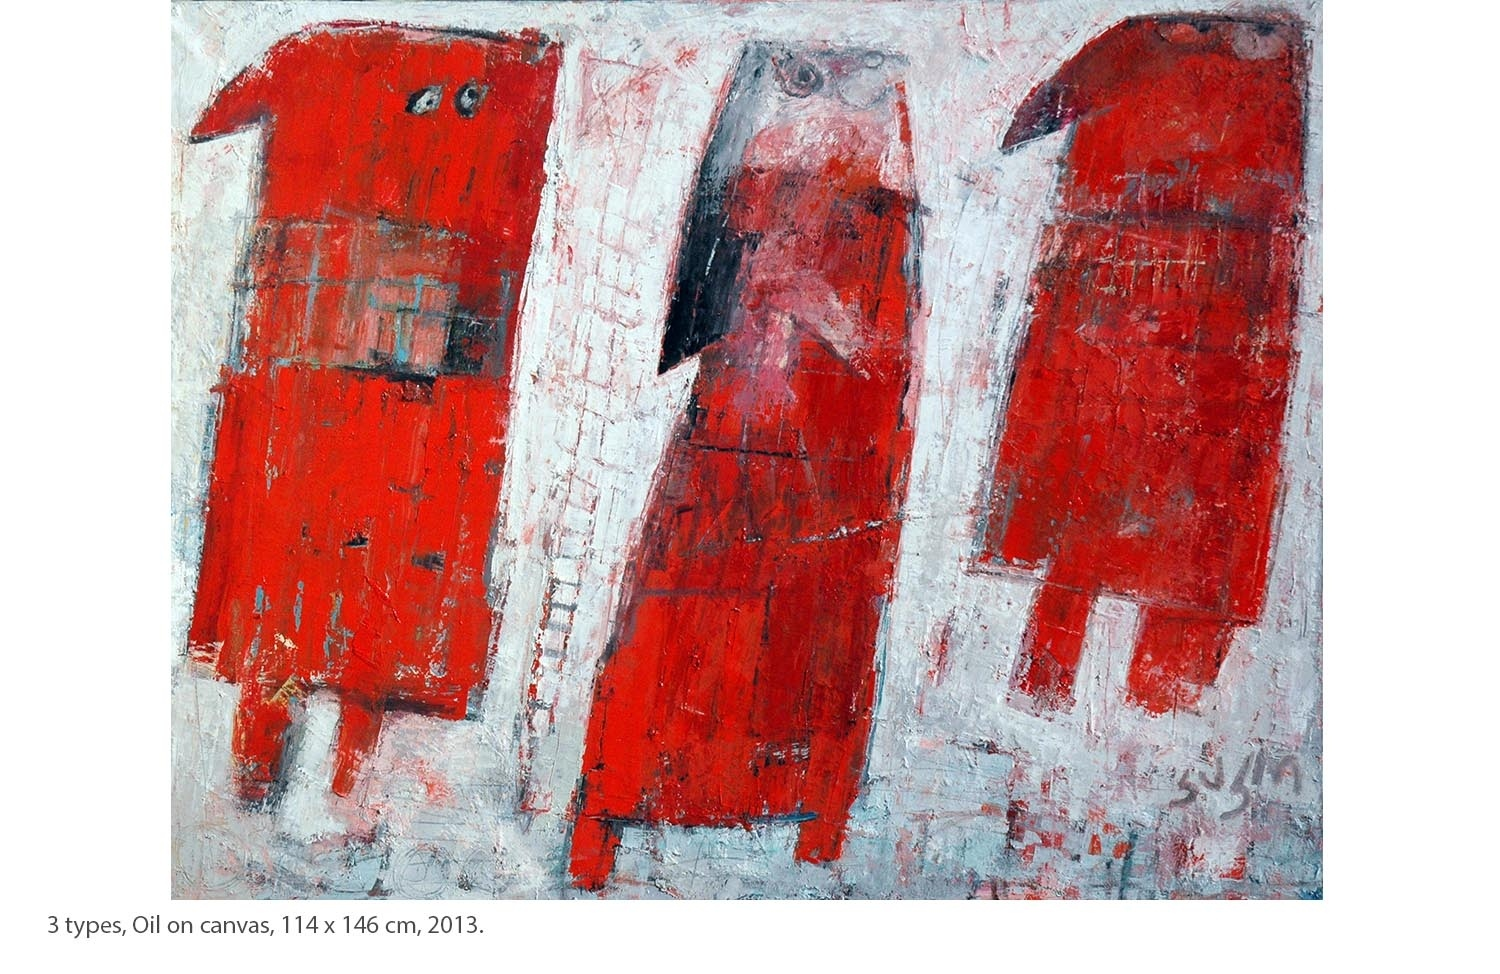 KAKO-3-types-Oil-on-canvas-114-x-146-cm-2013.